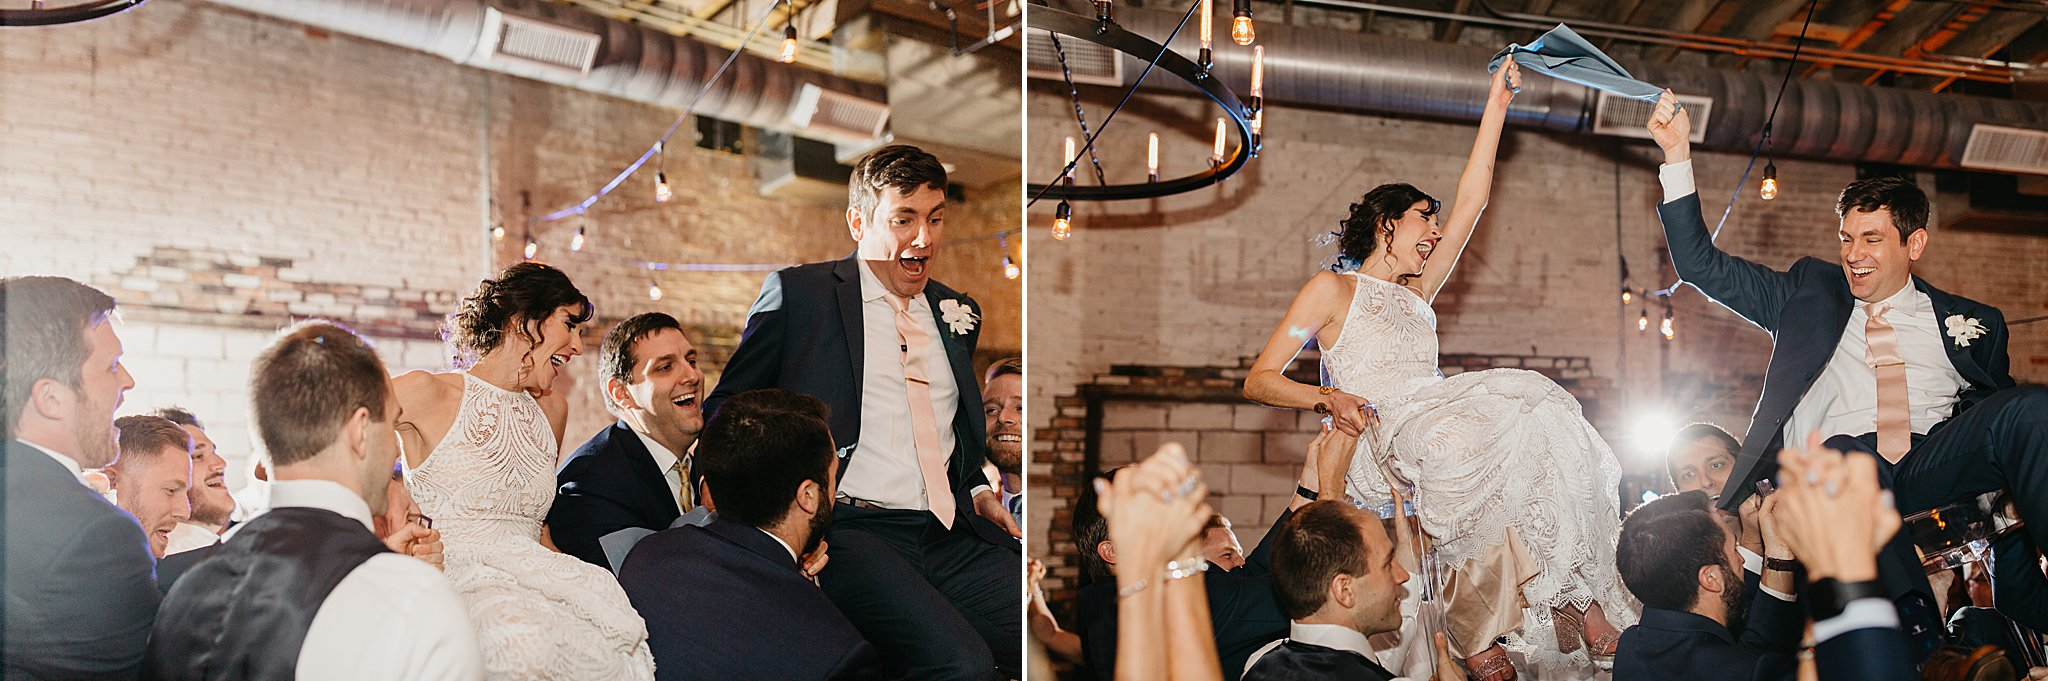 Wilderlove Co_Wedding Photographer_Industrial Wedding_Jewish Wedding_Dallas Texas Wedding_Brake & Clutch Warehouse_North Texas Photographer_0089.jpg